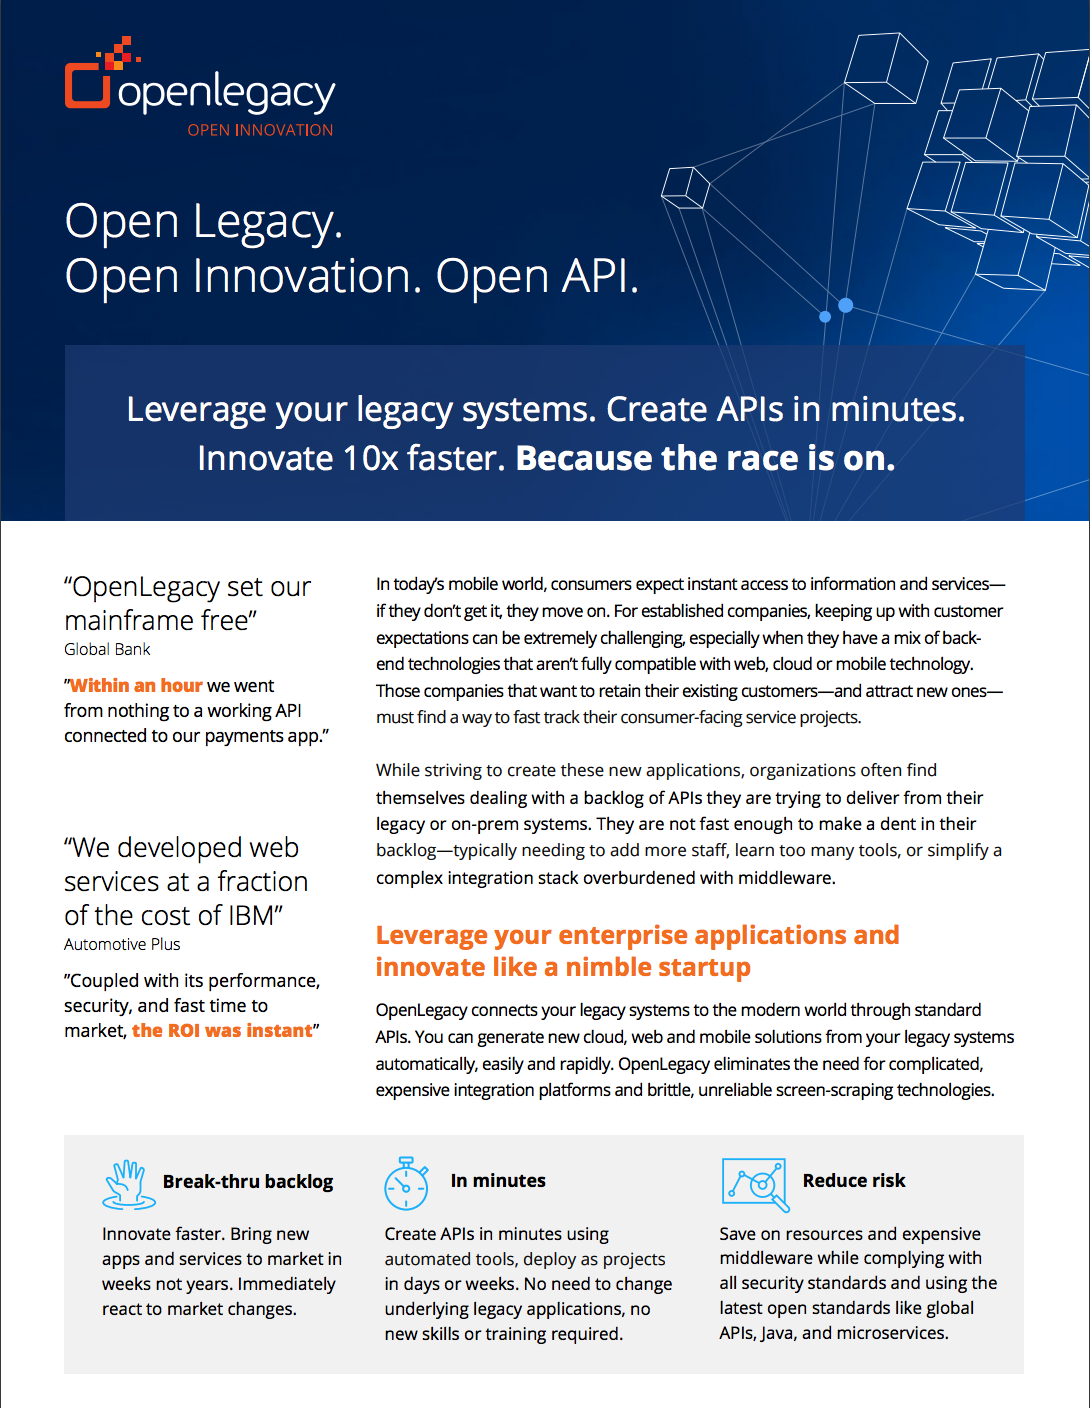 OpenLegacy Overview: Leverage your legacy systems. Create APIs in minutes. Innovate 10x faster.